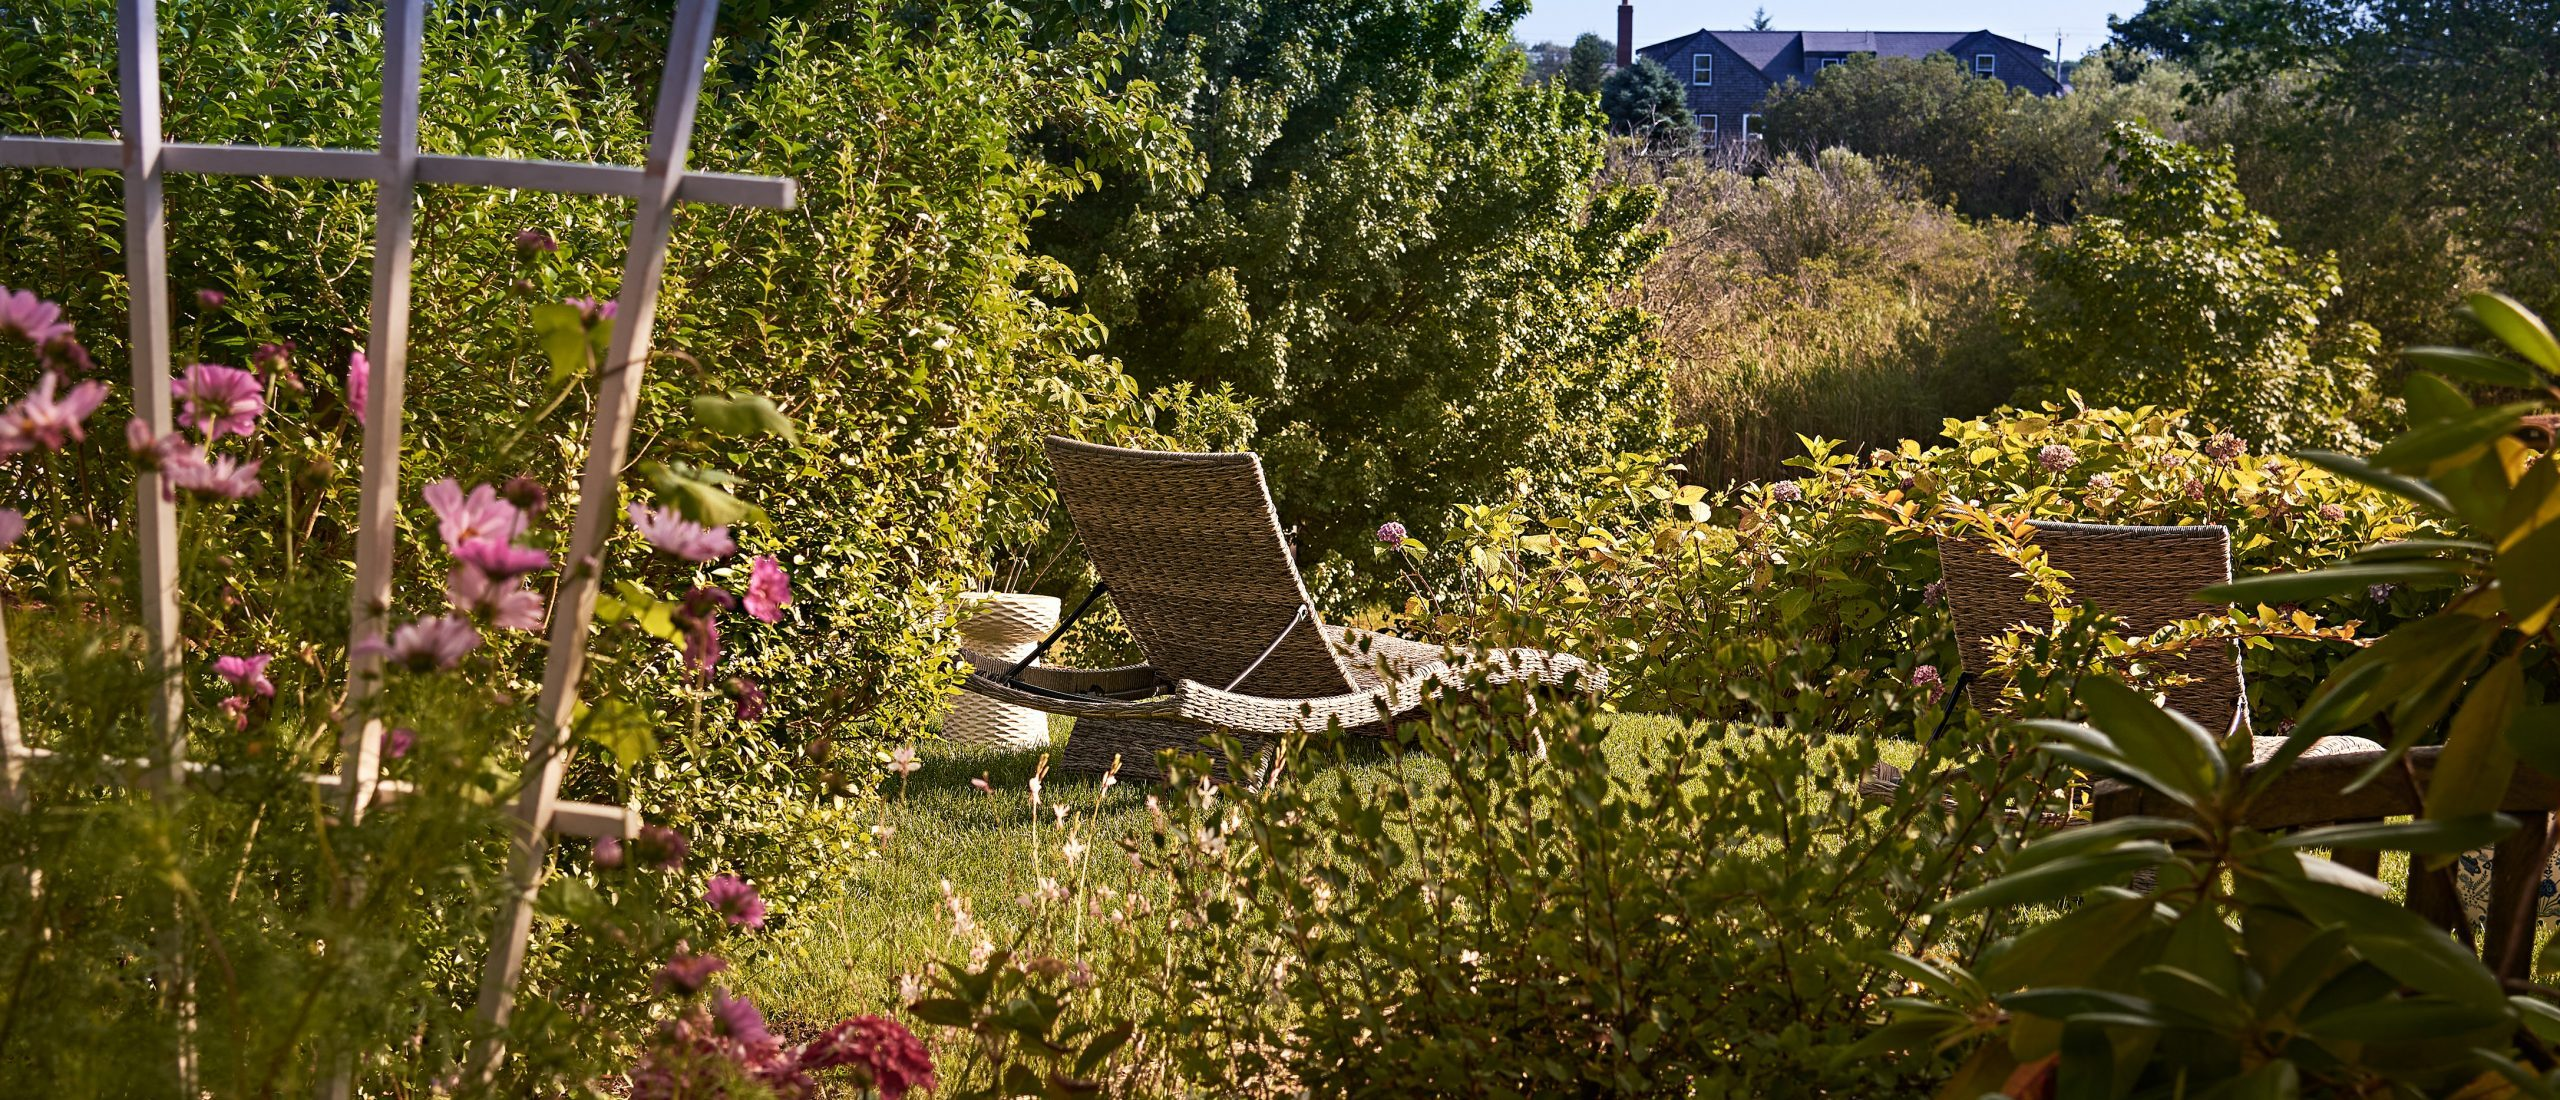 Lounge chair in the garden